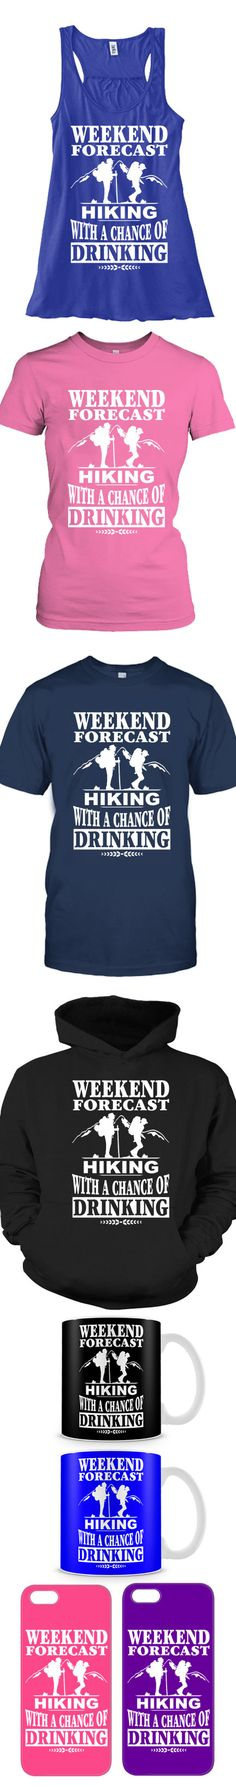 Love Hiking?Then Click The Image To Buy It Now or Tag Someone You Want To Buy This For.